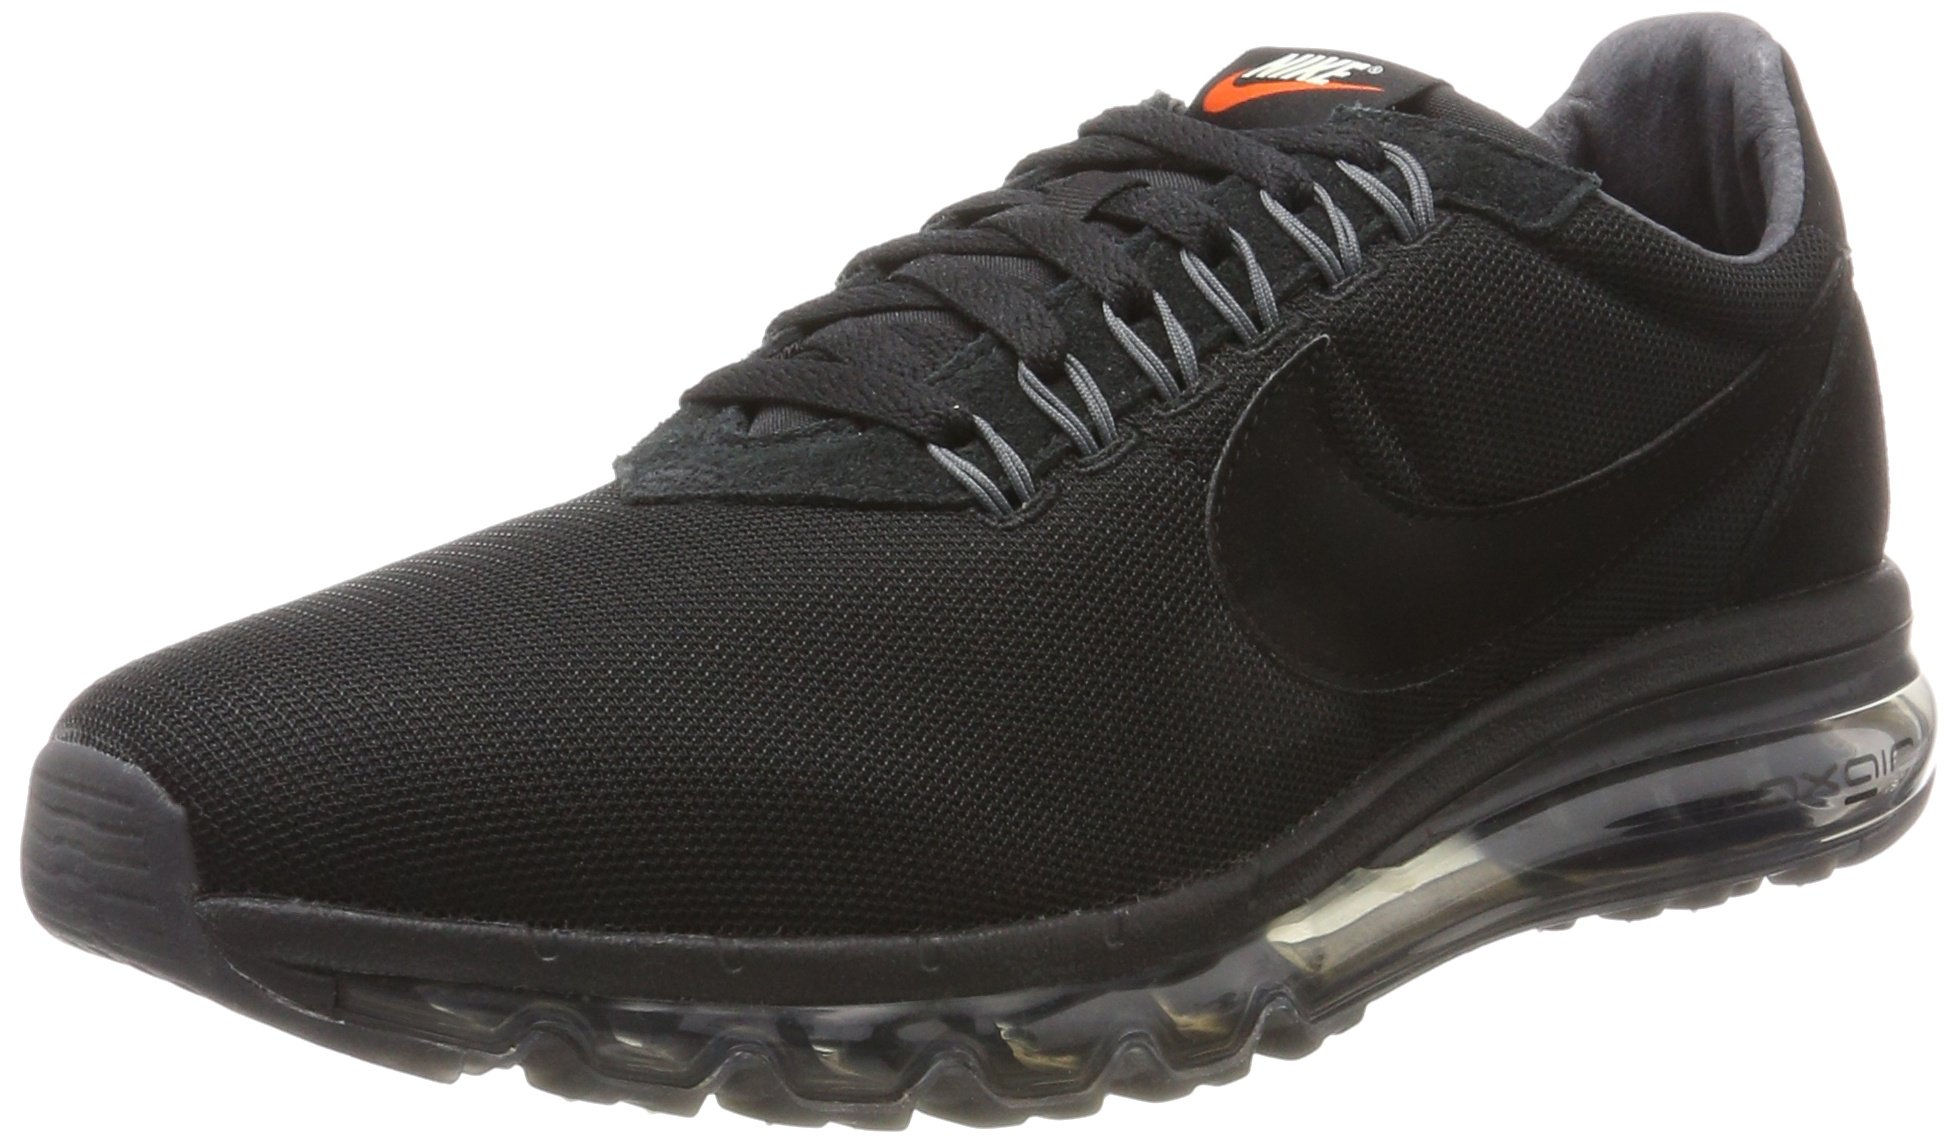 brand new 03697 4c7d5 Galleon - Nike Mens Air Max LD-Zero, BLACK BLACK-DARK GREY, 8 M US